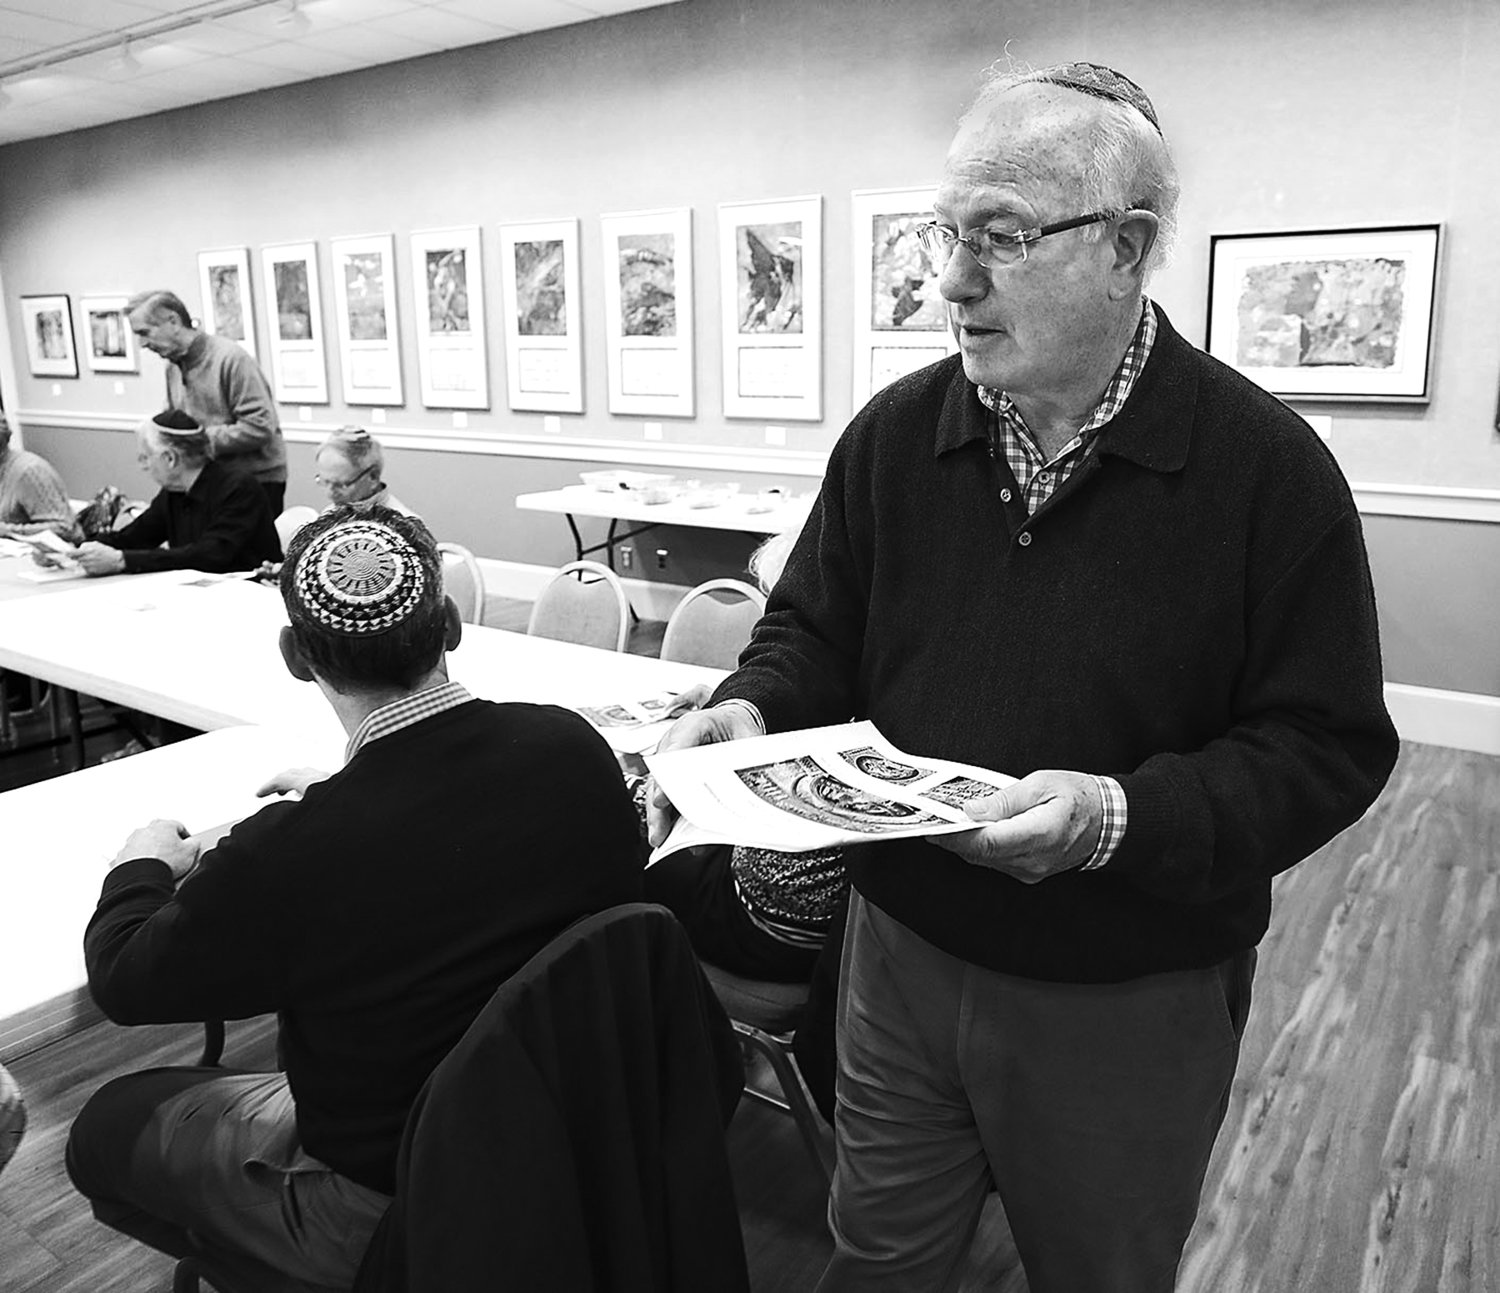 Rabbi Wayne Franklin passes out materials at the beginning of an adult education class.